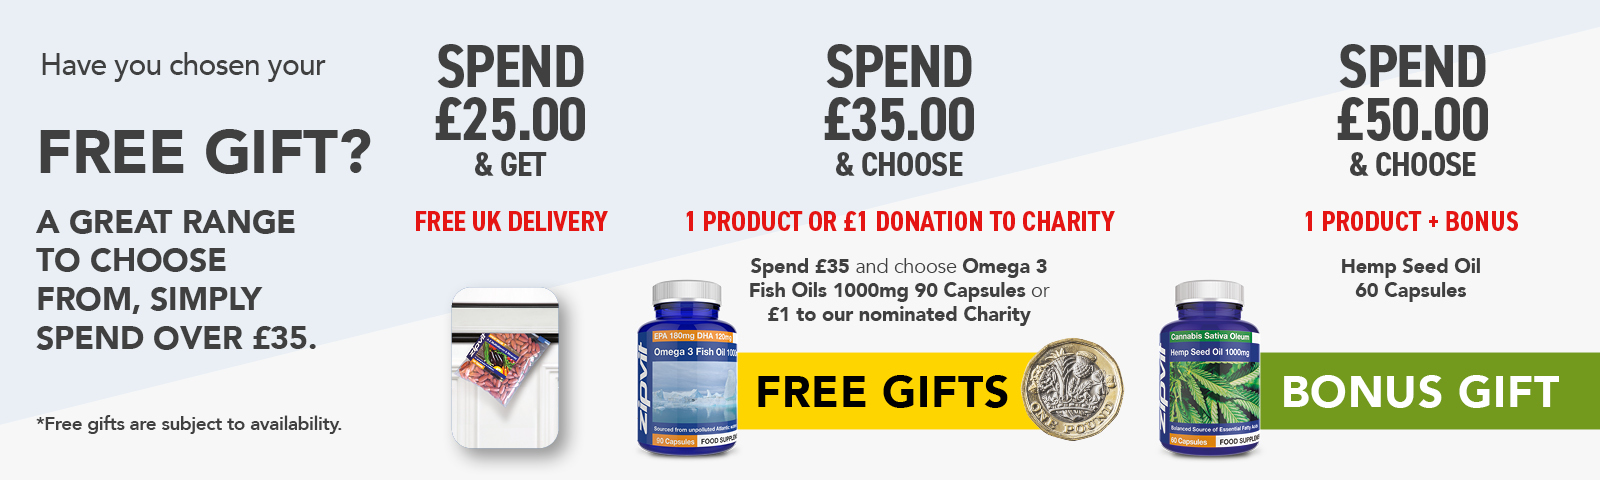 Free gifts when you spend over £35